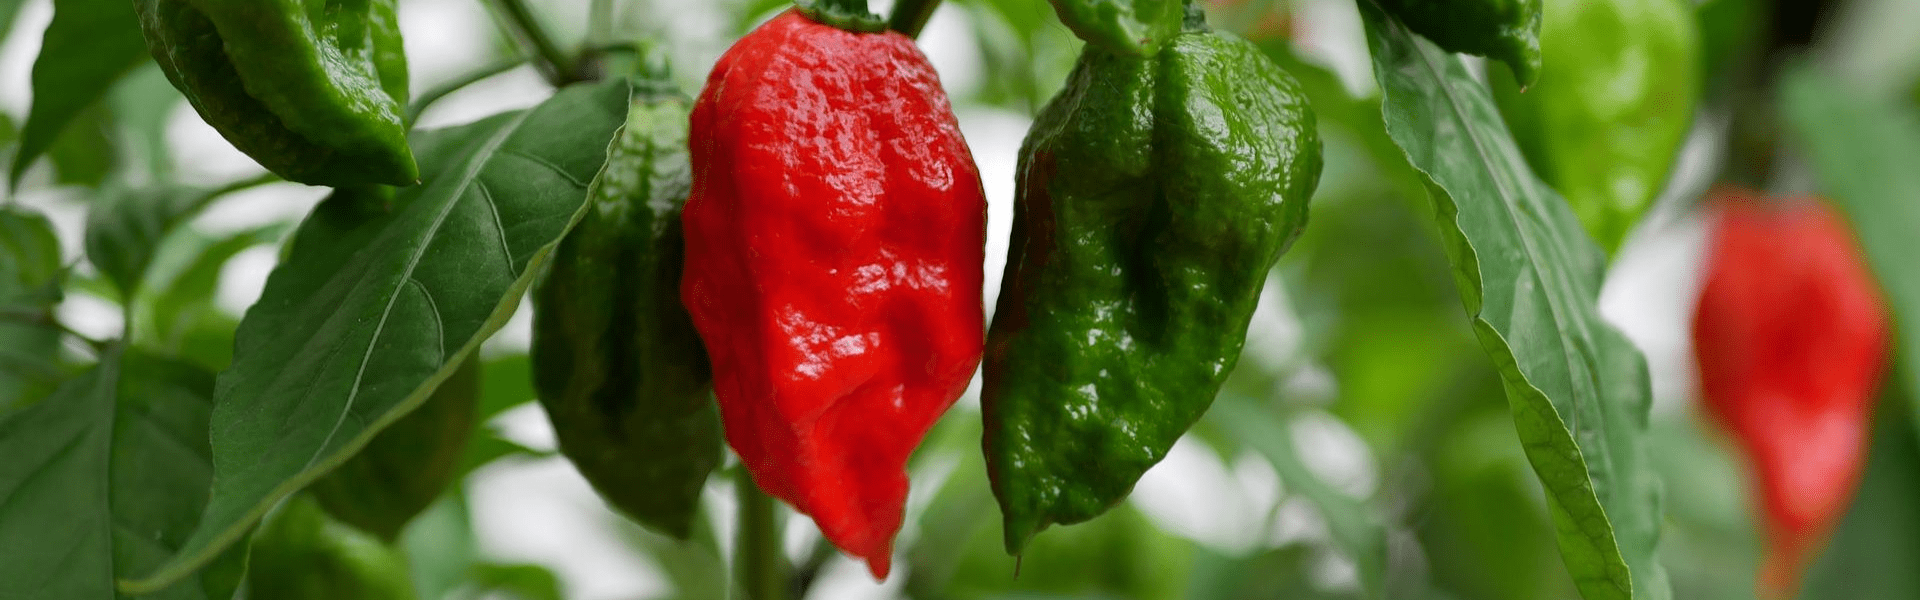 Bhut Jolokia from North East India